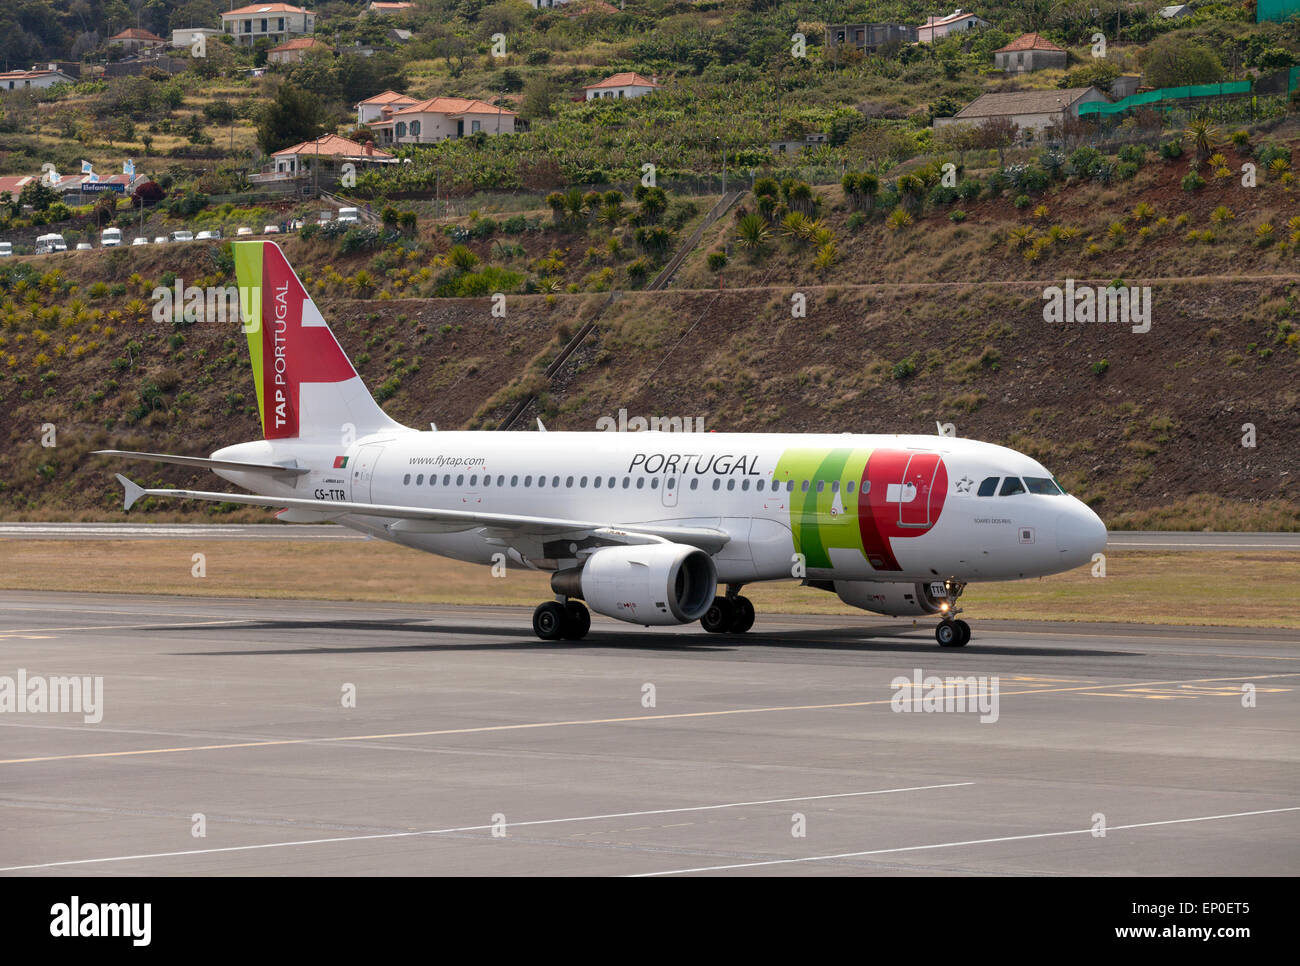 A TAP Portugal Airbus A319 airplane taxiing at Funchal airport, Madeira, Europe - Stock Image